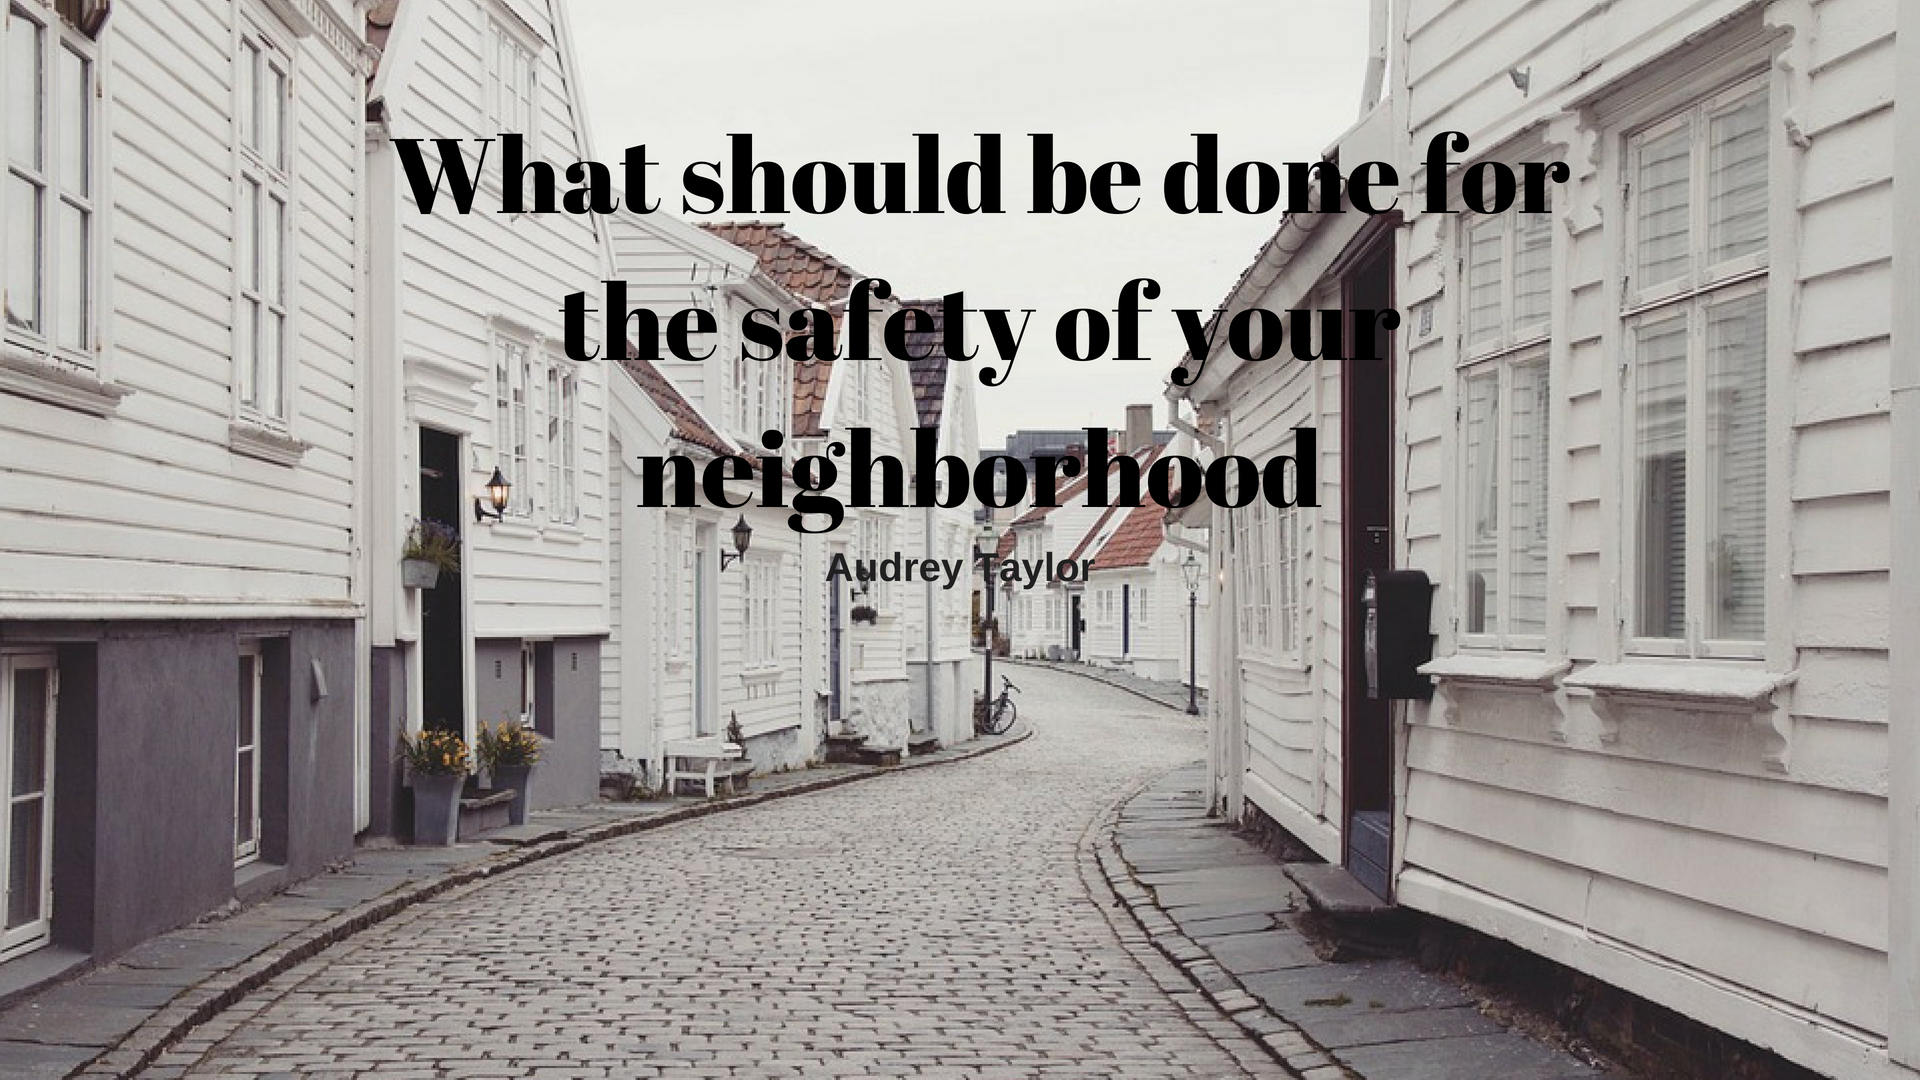 What Should Be Done for the Safety of Your Neighborhood